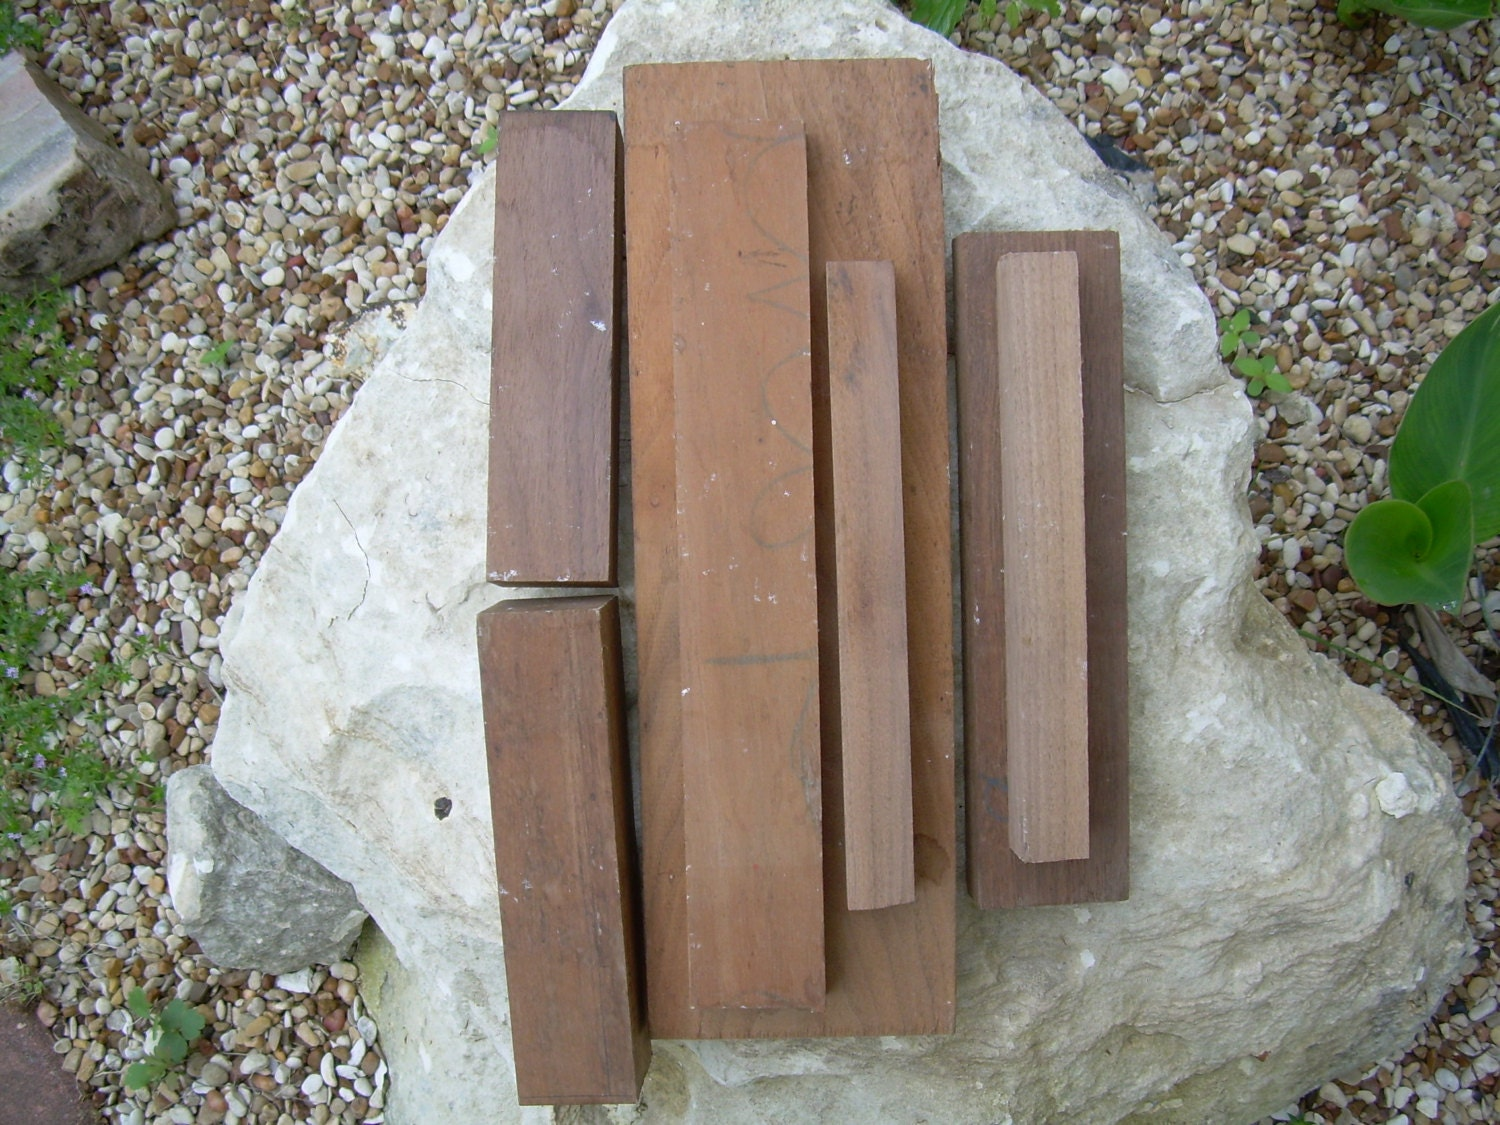 Solid walnut wood pieces woodworking lathe craft supply for Unfinished wood pieces for crafts